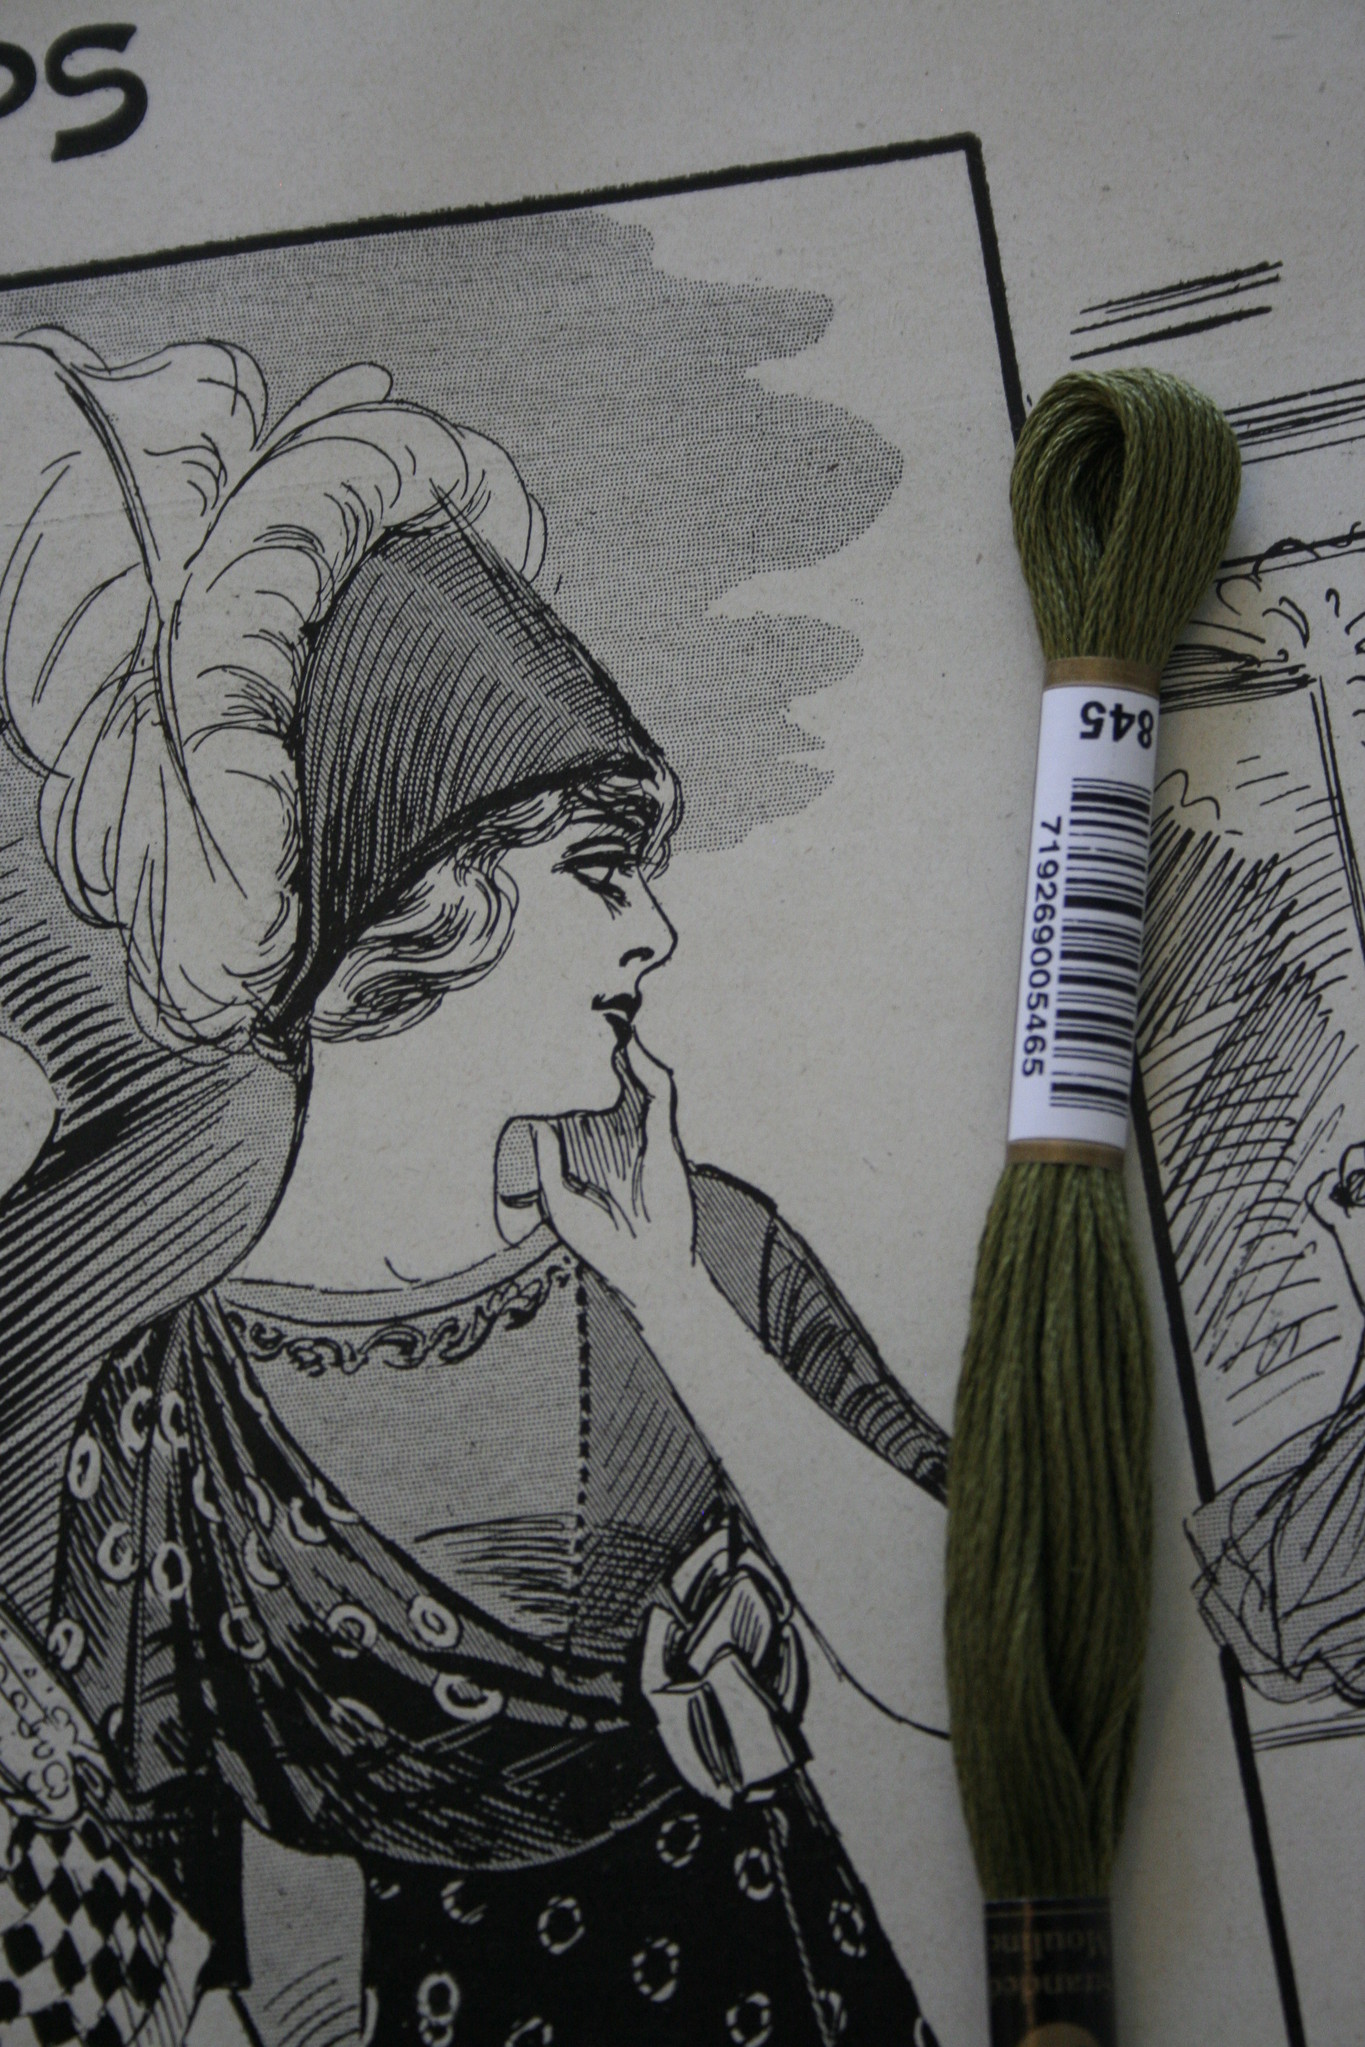 Embroidery thread cotton.